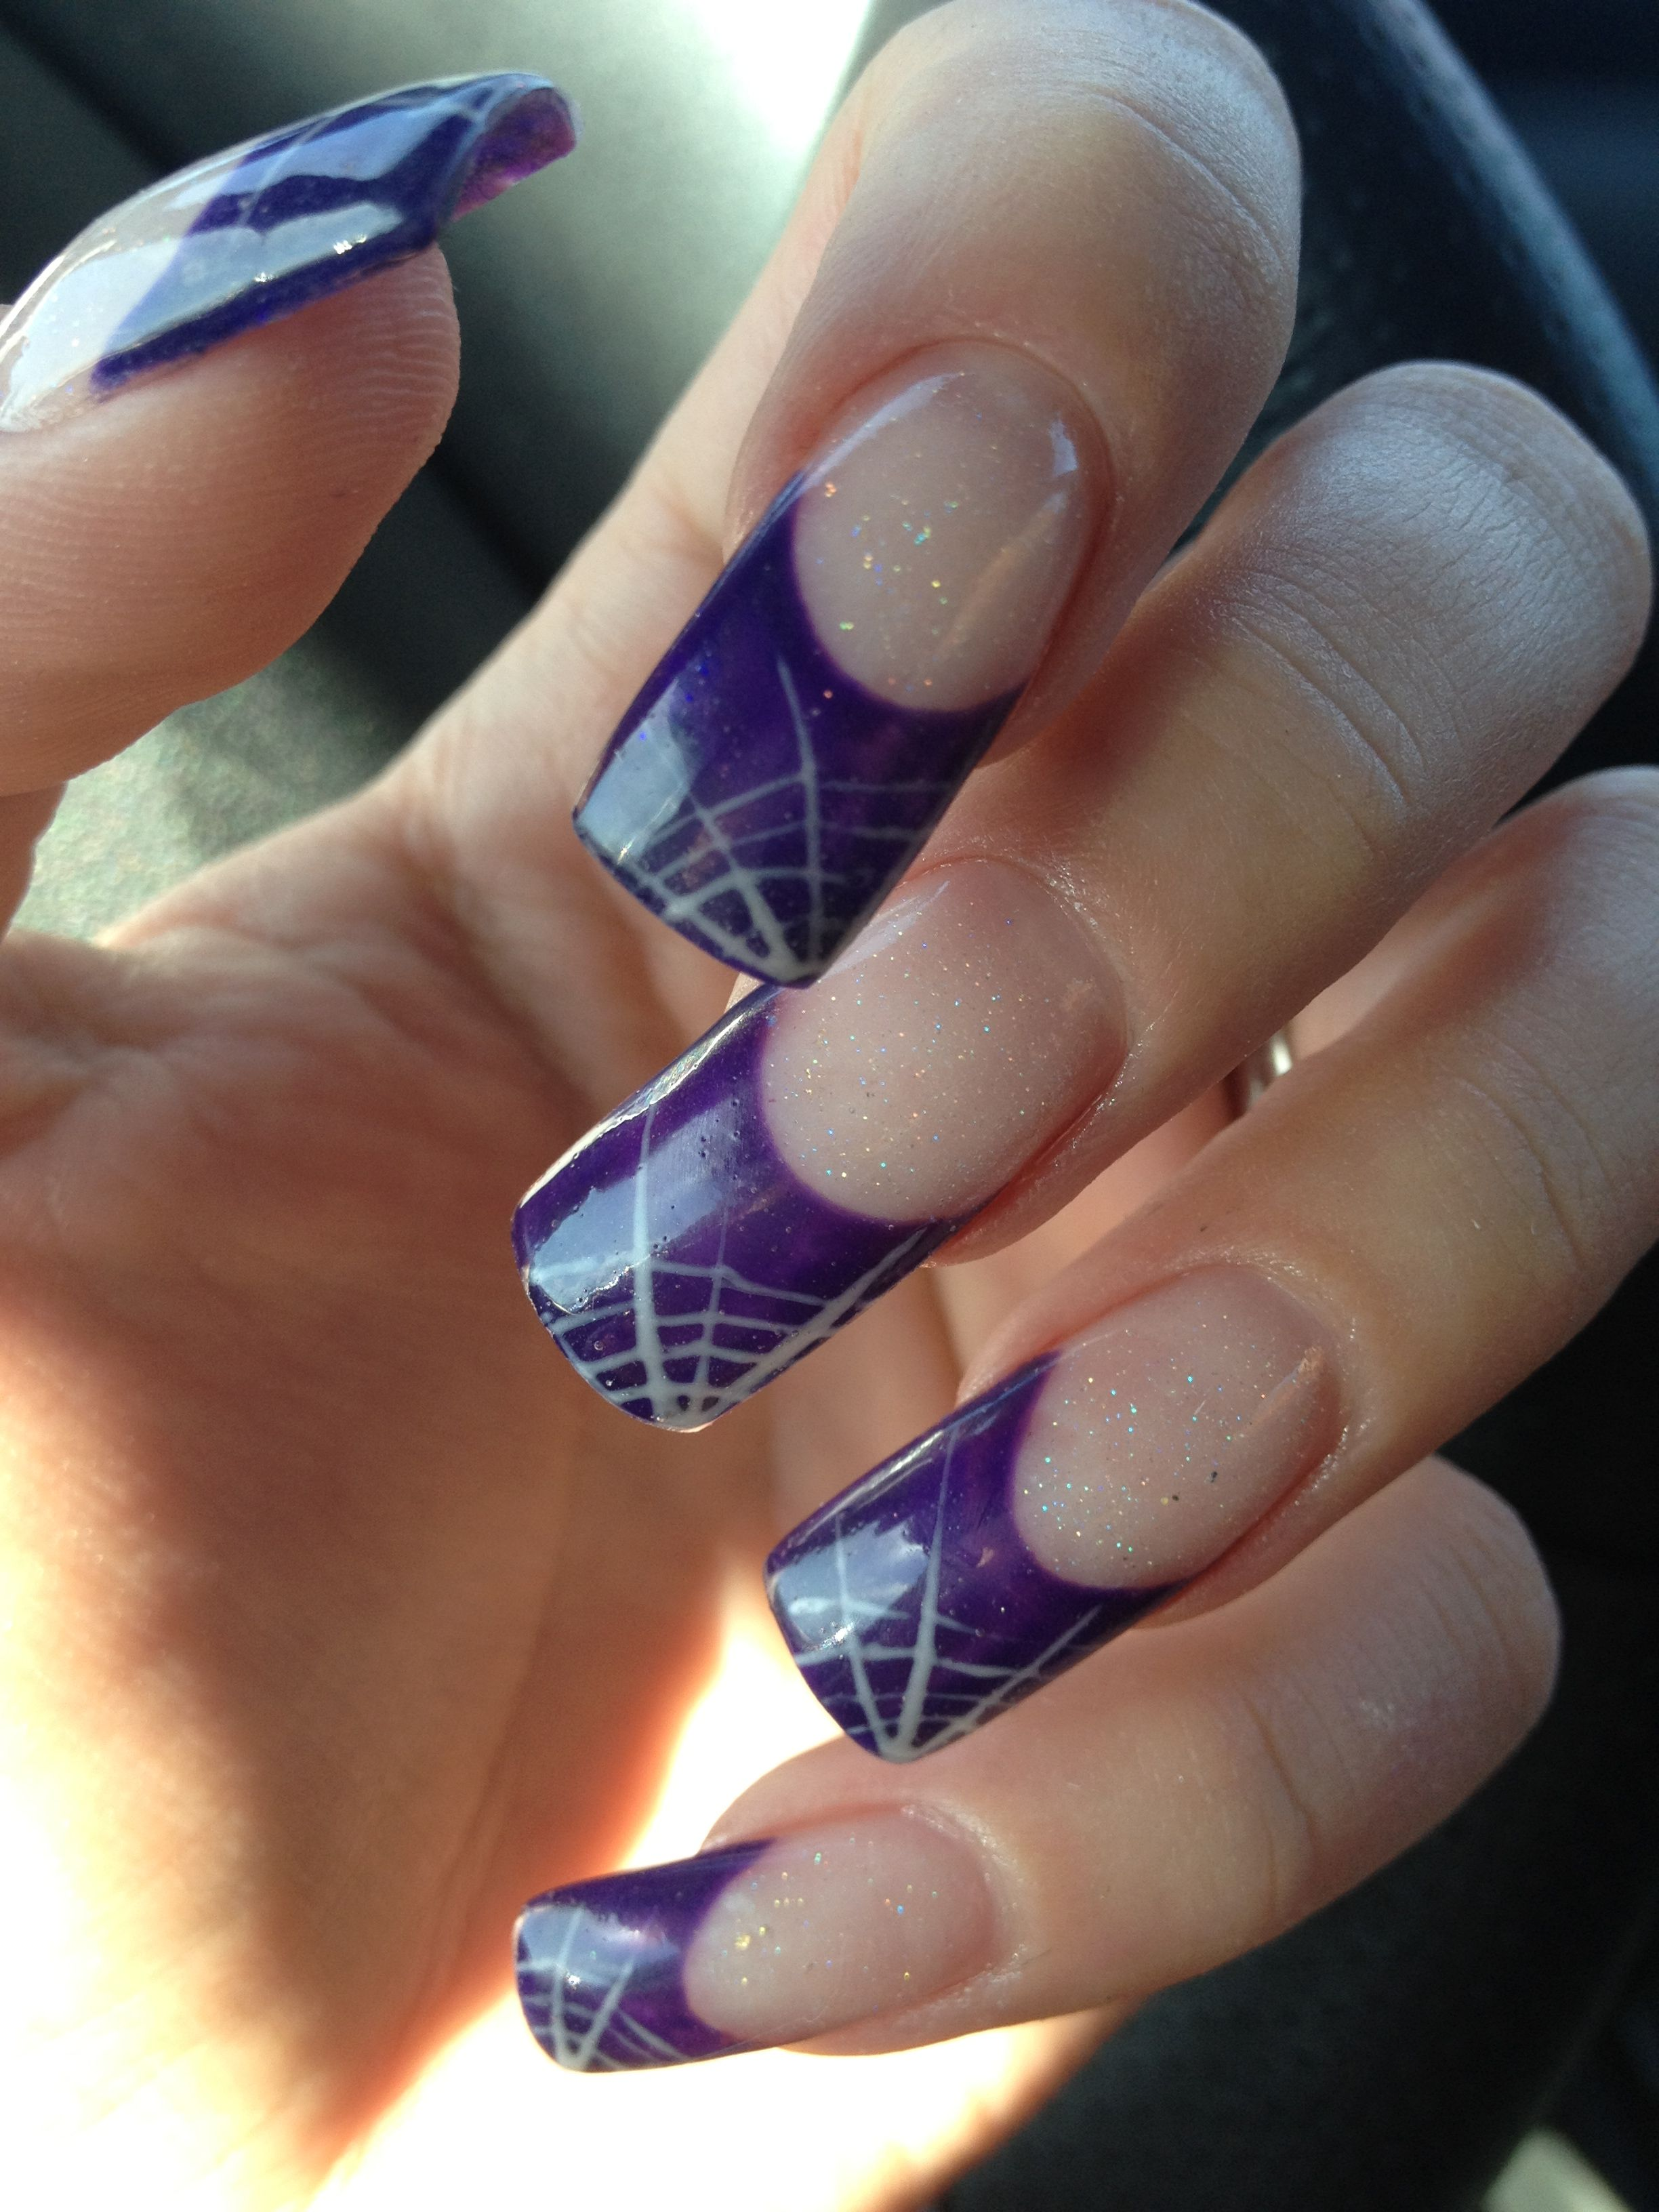 gel #nails #purlpe #spider #web #design | My nails II | Pinterest